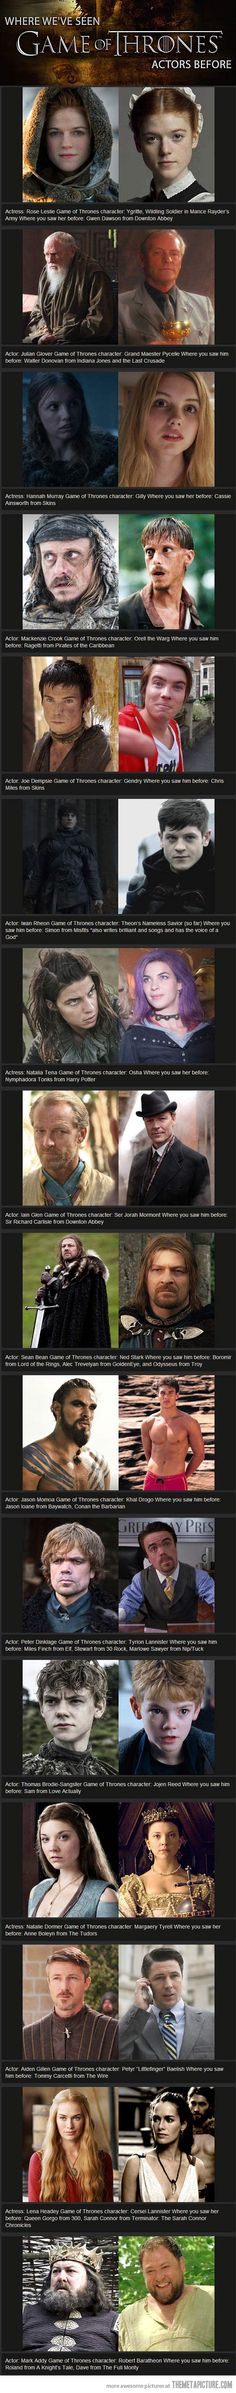 Game of Thrones characters: Where Have We Seen You Before? || Follow here http://pinterest.com/cakespinyoface/geek-of-thrones-a-storm-of-boards/ for even more Game of Thrones Geekery-- original art, mashups and more! watch this movie free here: http://realfreestreaming.com